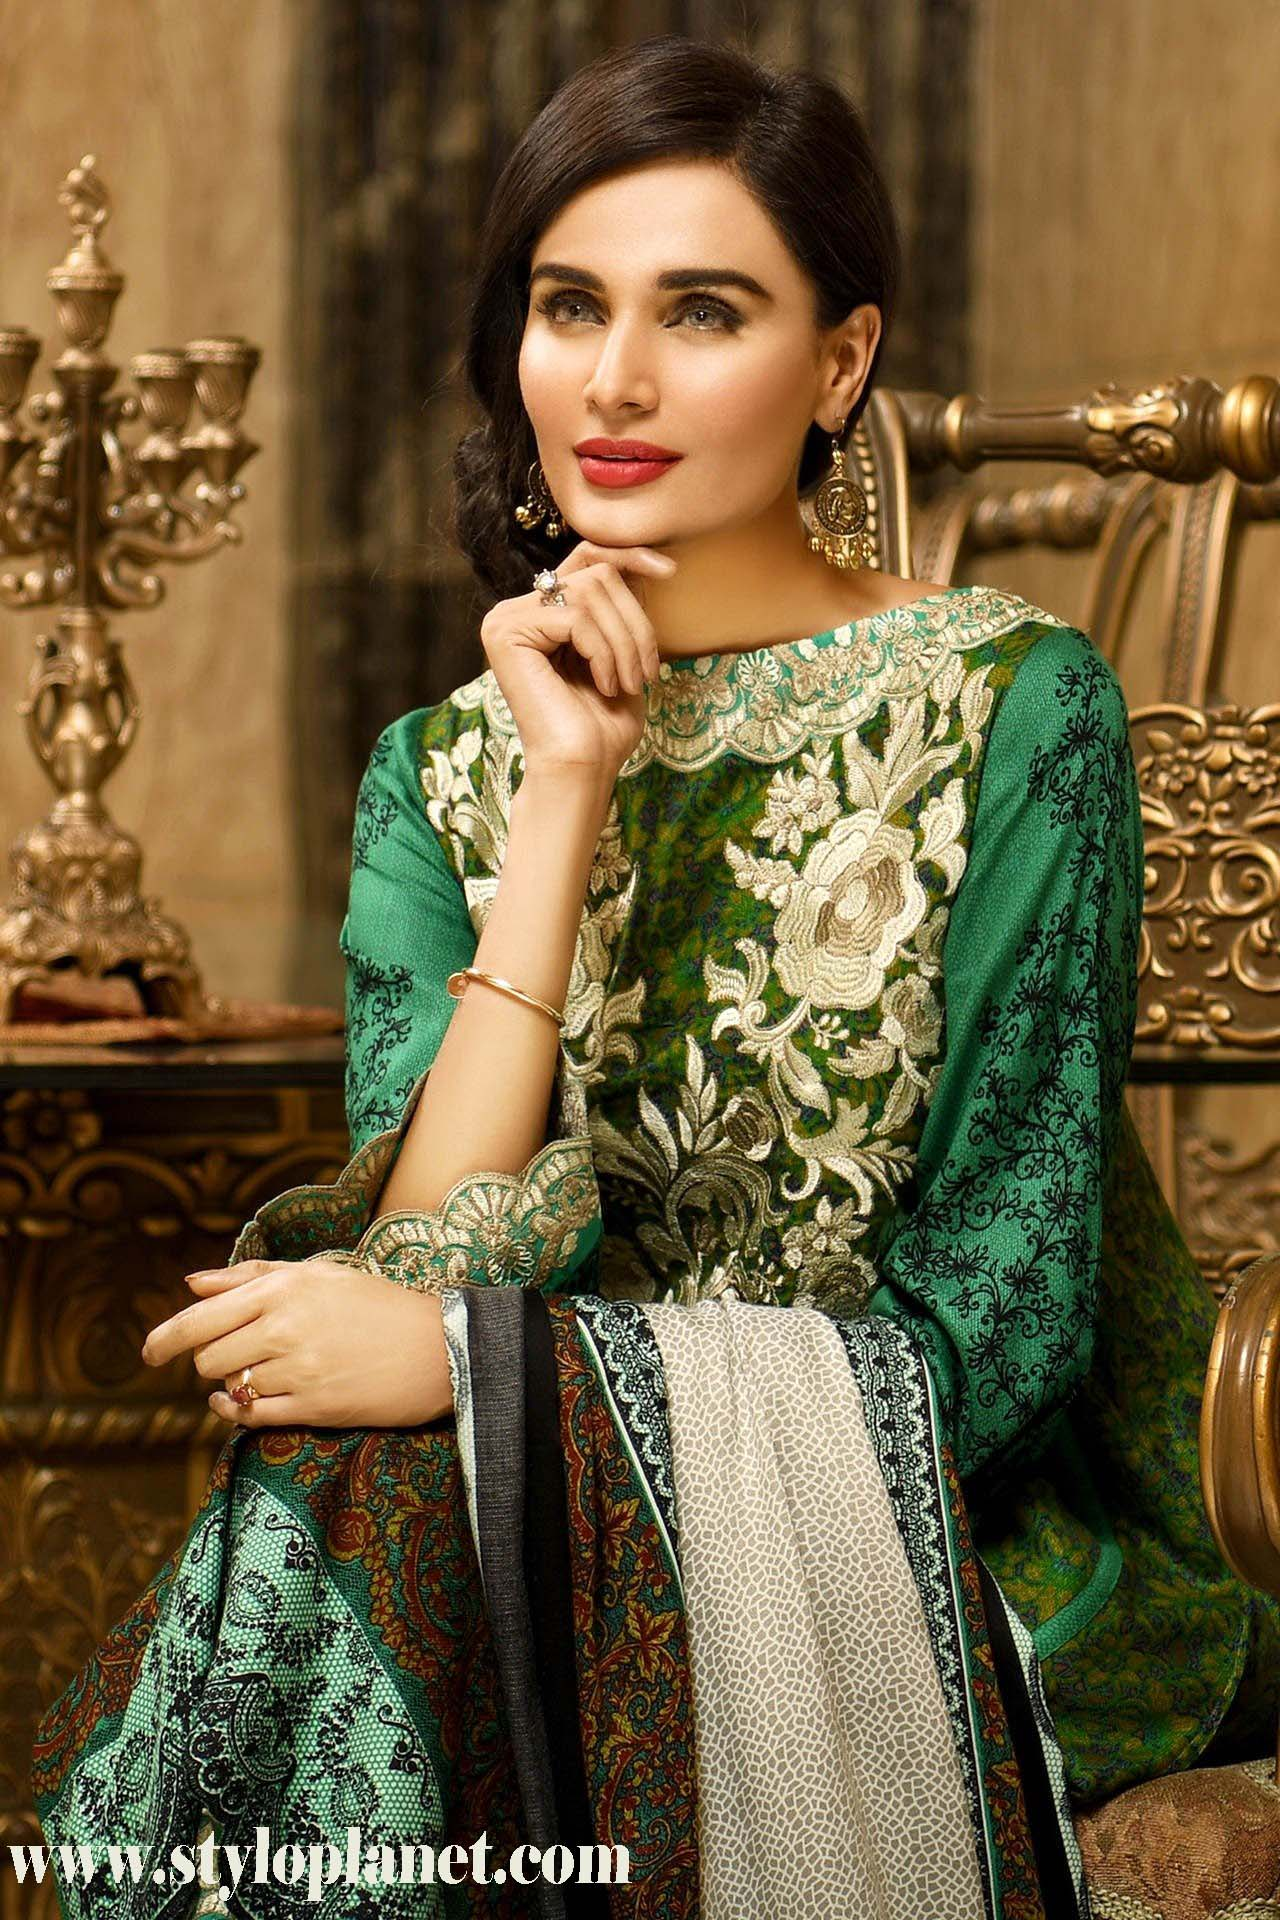 house-of-ittehad-royal-embroidered-winter-dresses-2016-17-for-women-7